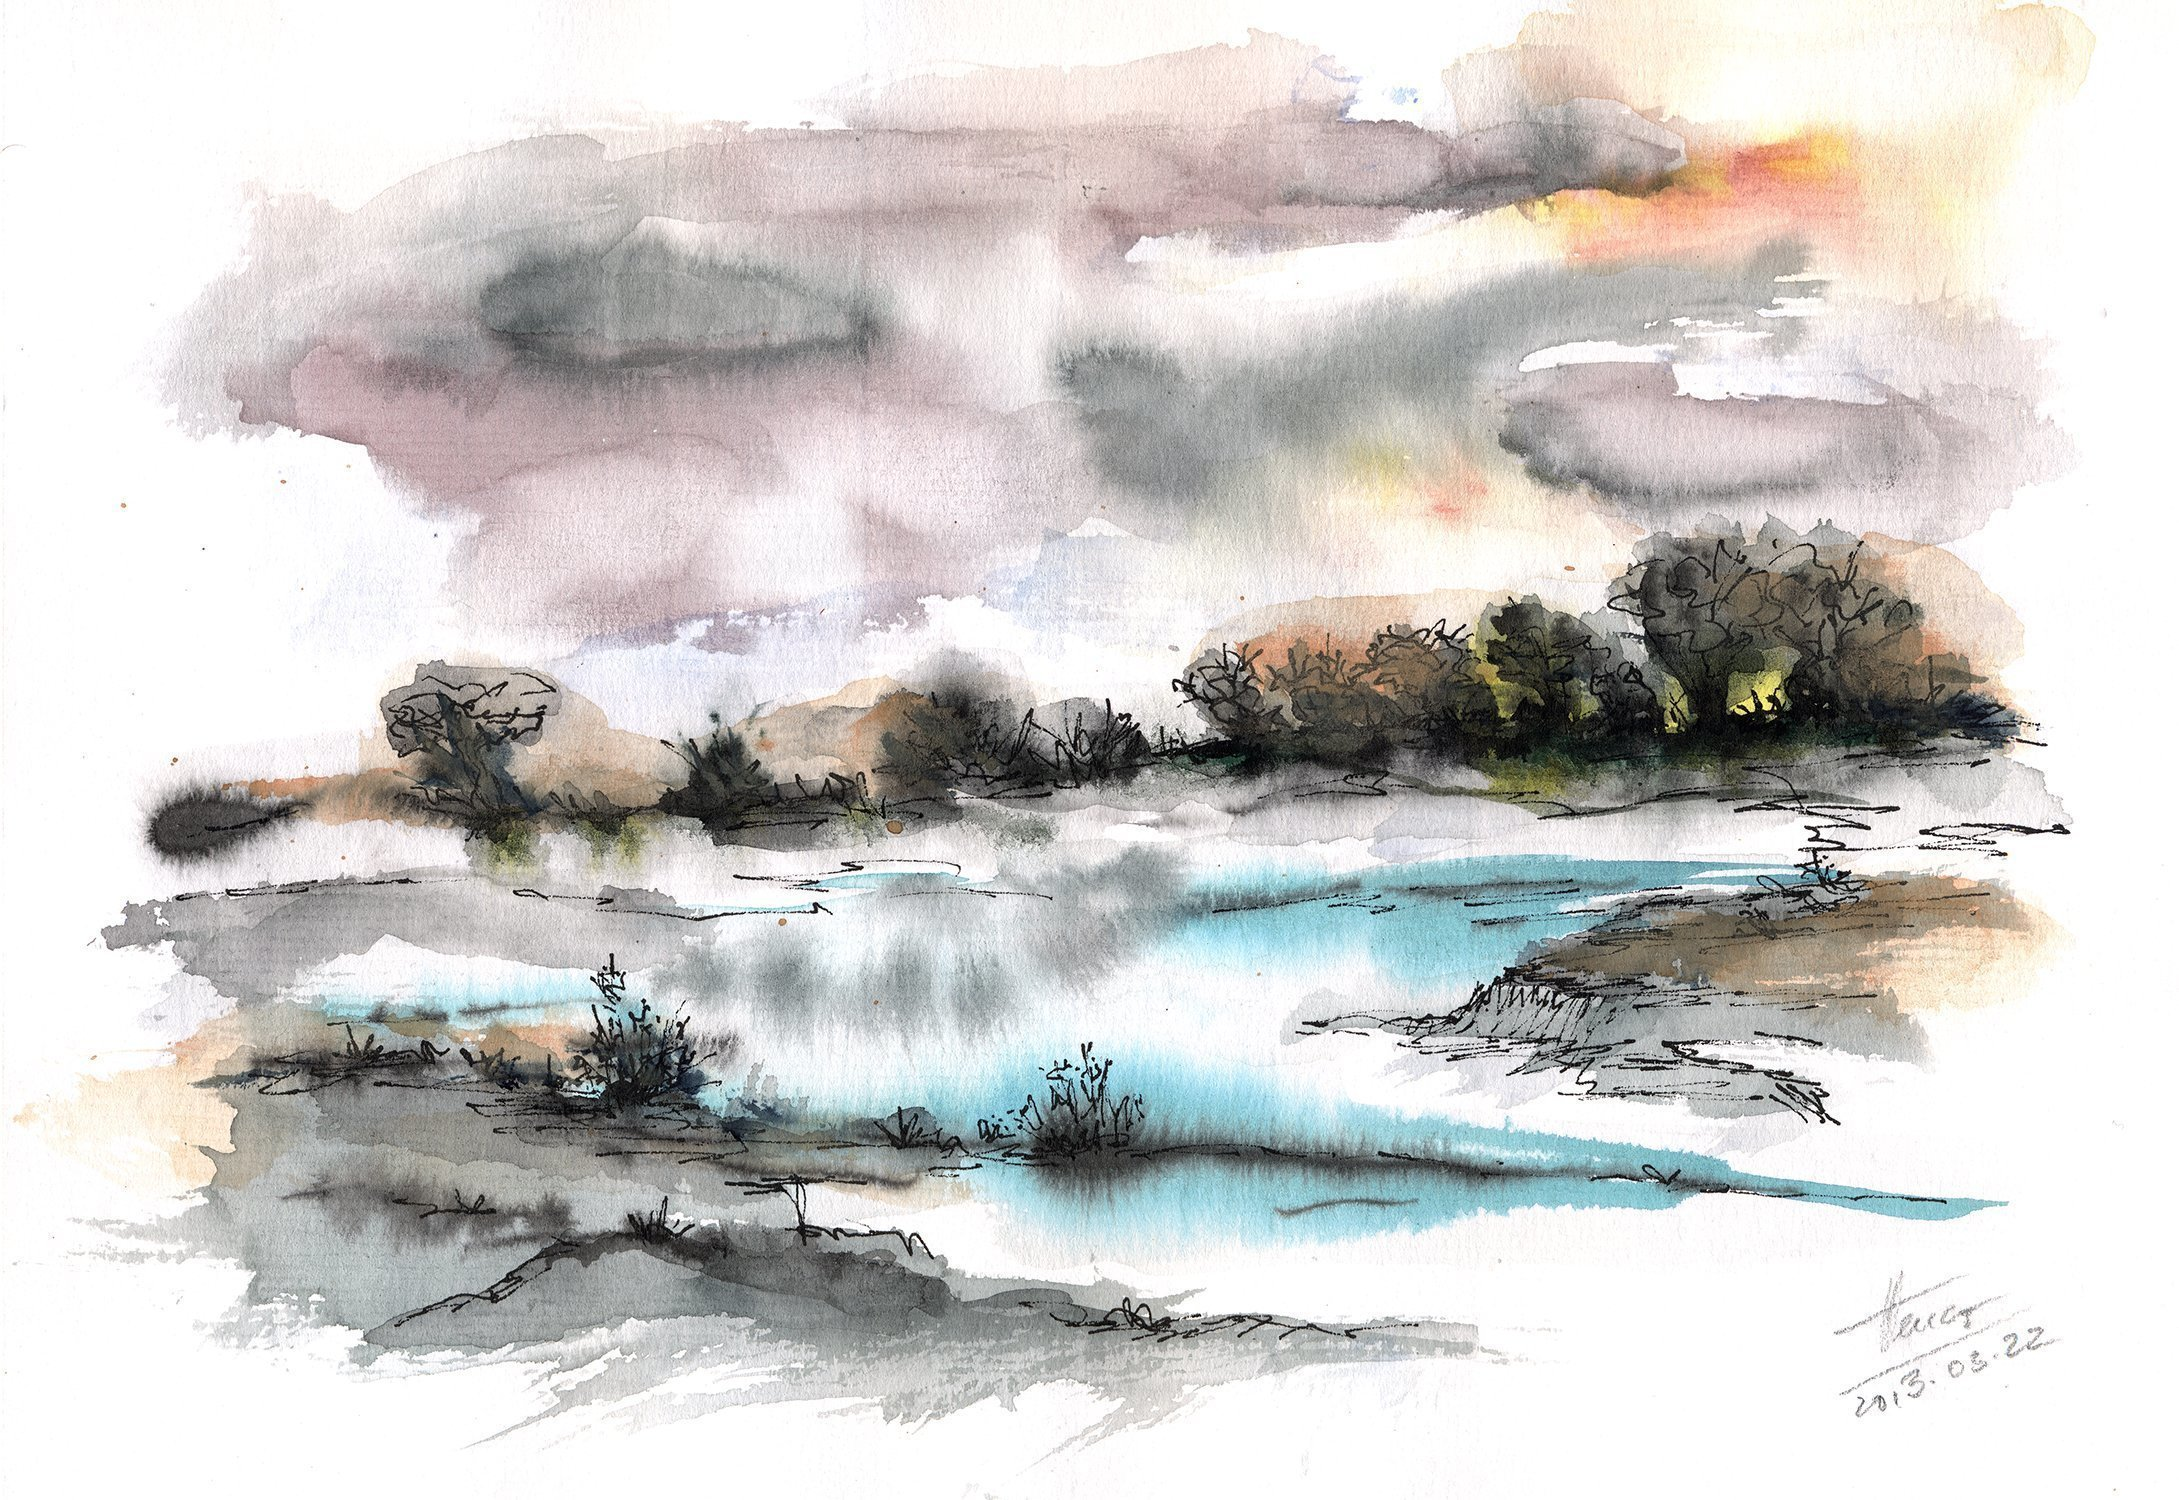 Aniko Hencz; Frozen river, 2013, Original Watercolor, 20 x 30 cm. Artwork description: 241  watercolor, abstract, landscape, river, nature, watercolor painting, trees, winter landscape, abstract watercolor ...